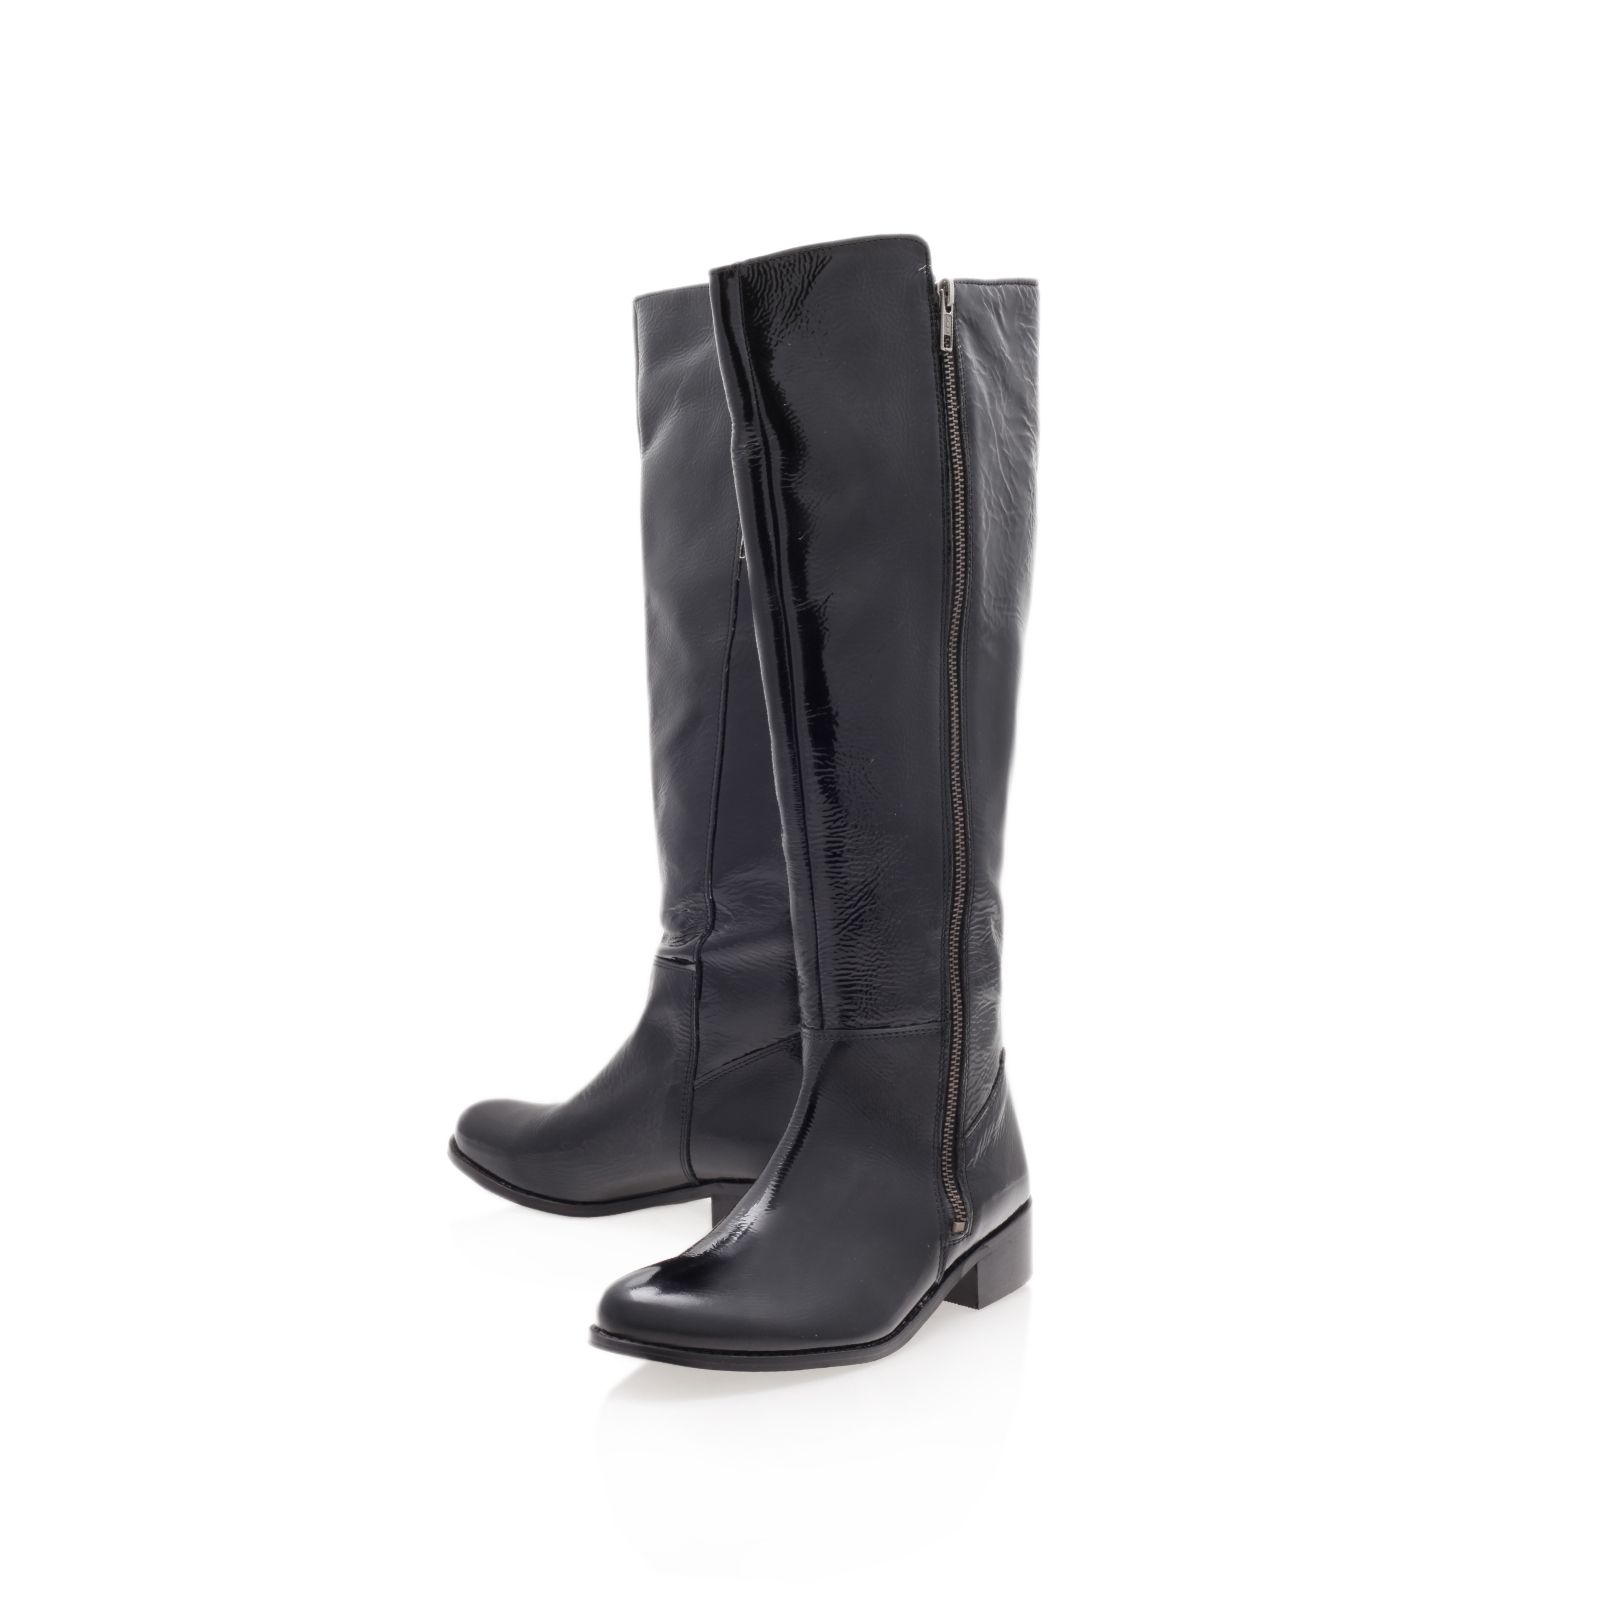 Paris low heeled knee length boots